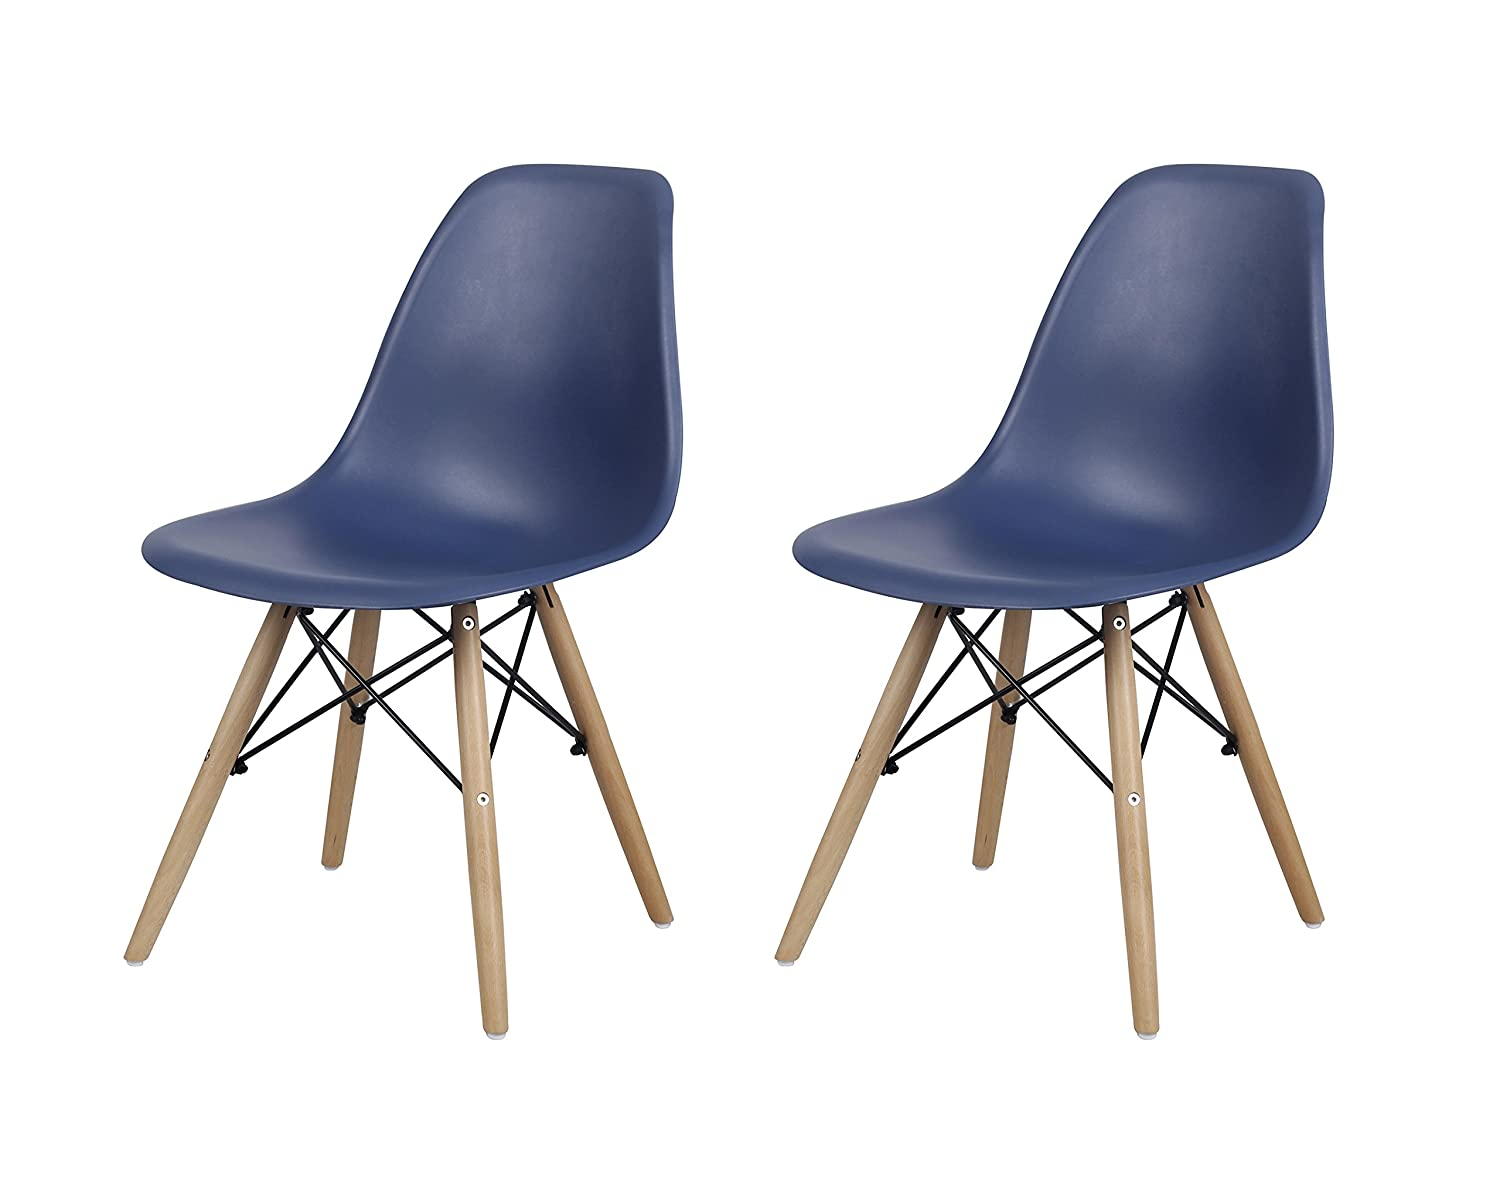 GIA DSW 2 Eames Plastic Chair, 2-Pack, Blue/Wood Legs